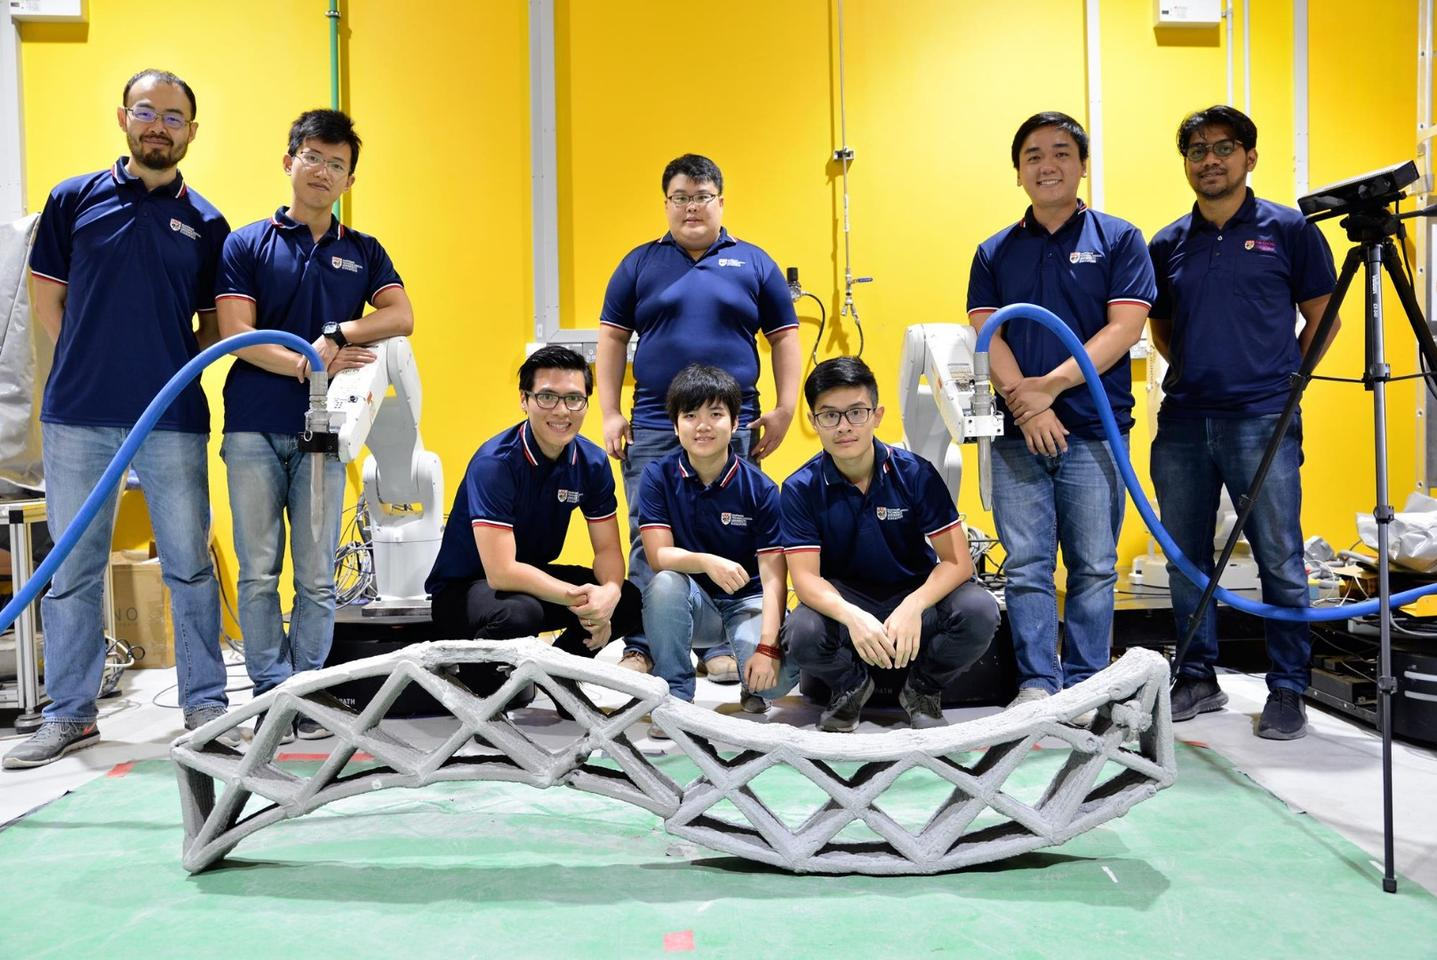 The NTU team with the two robots and the structure that they built